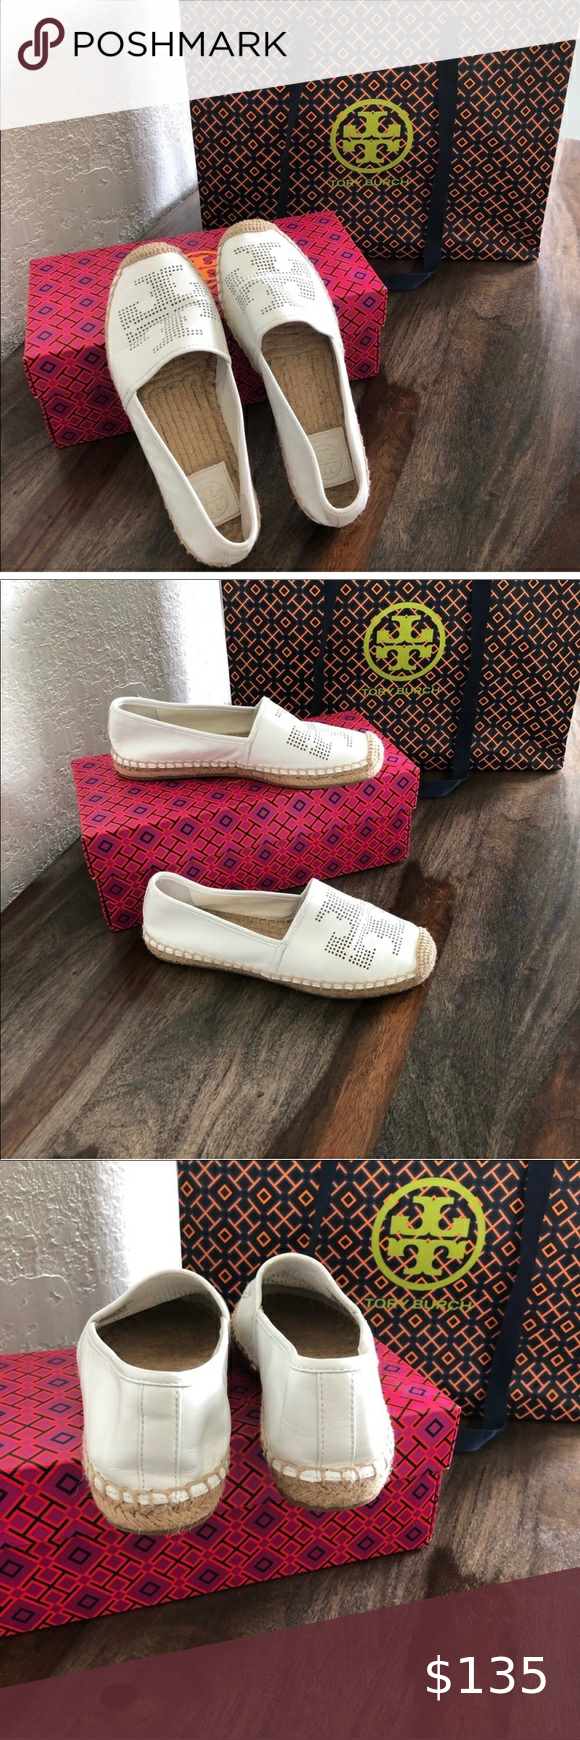 Tory Burch white leather espadrilles Tory Burch wh